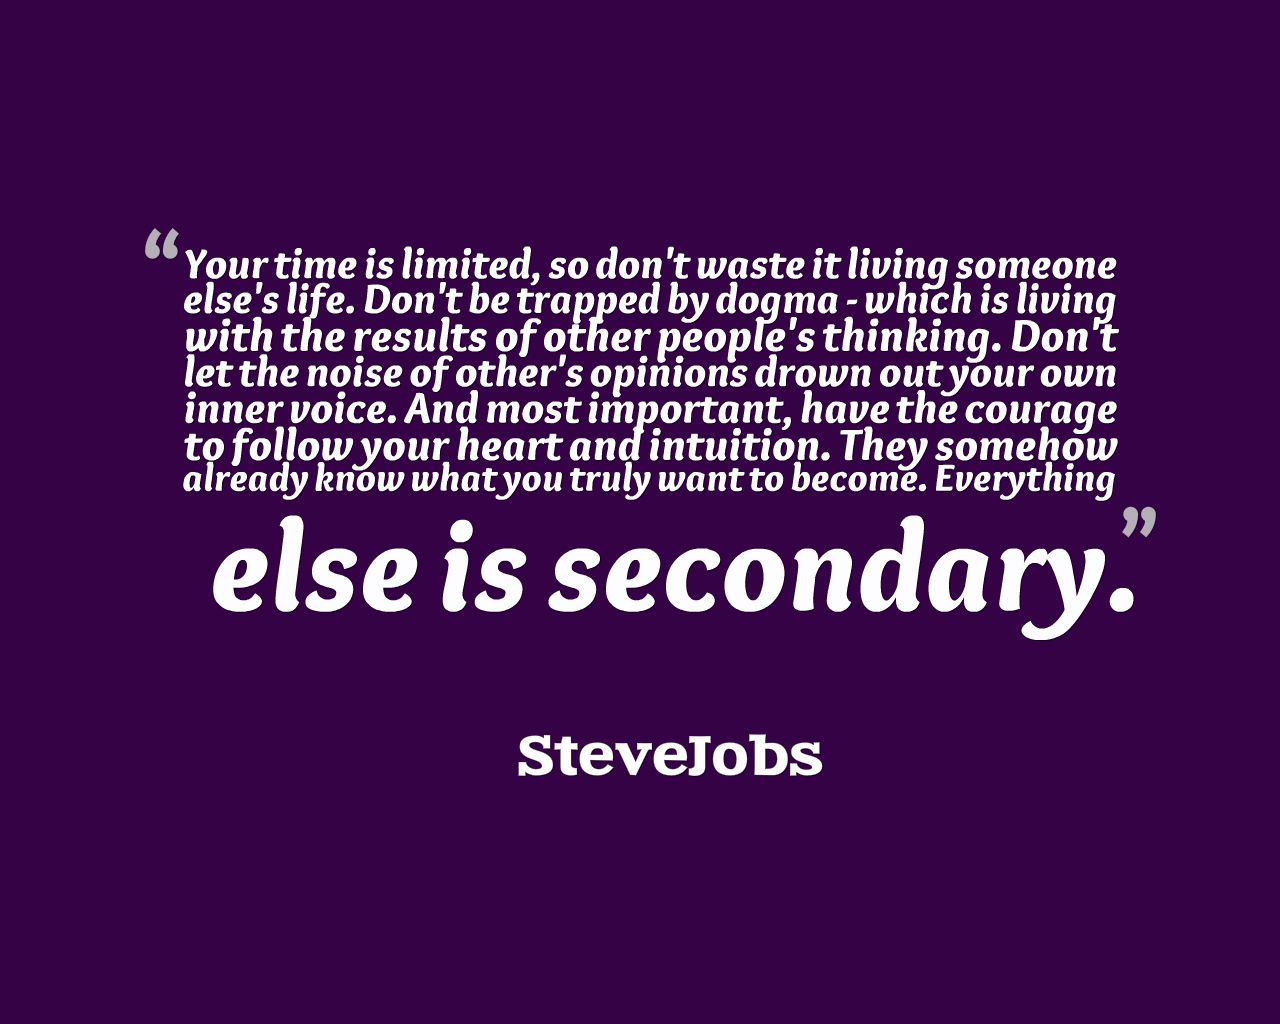 [Image] 'Everything else is secondary'